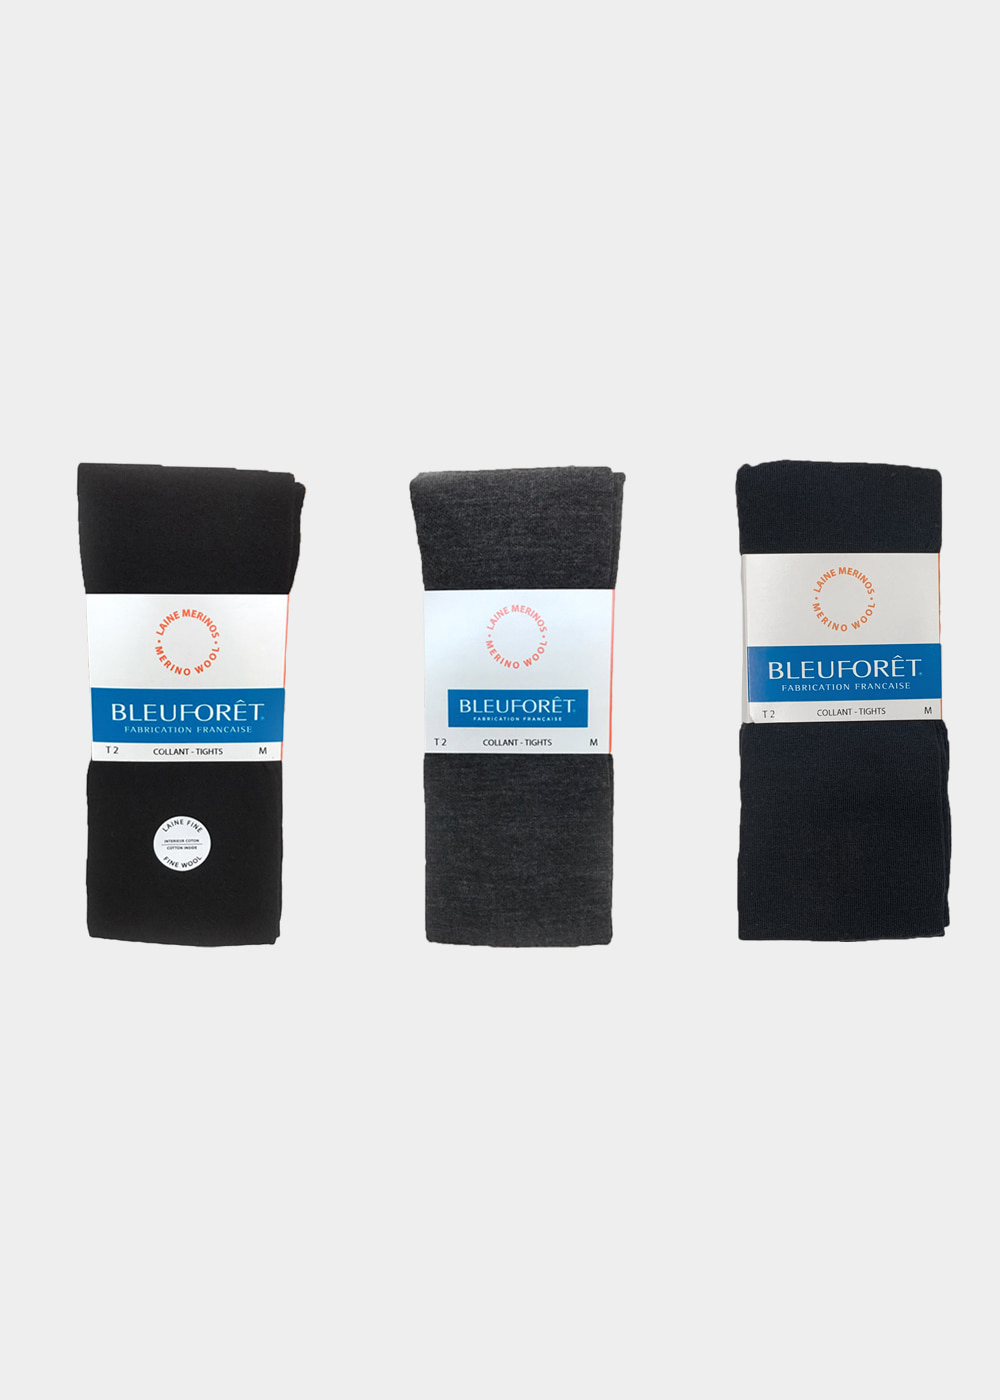 WOOL TIGHTS - black, charcoal grey, navy blue